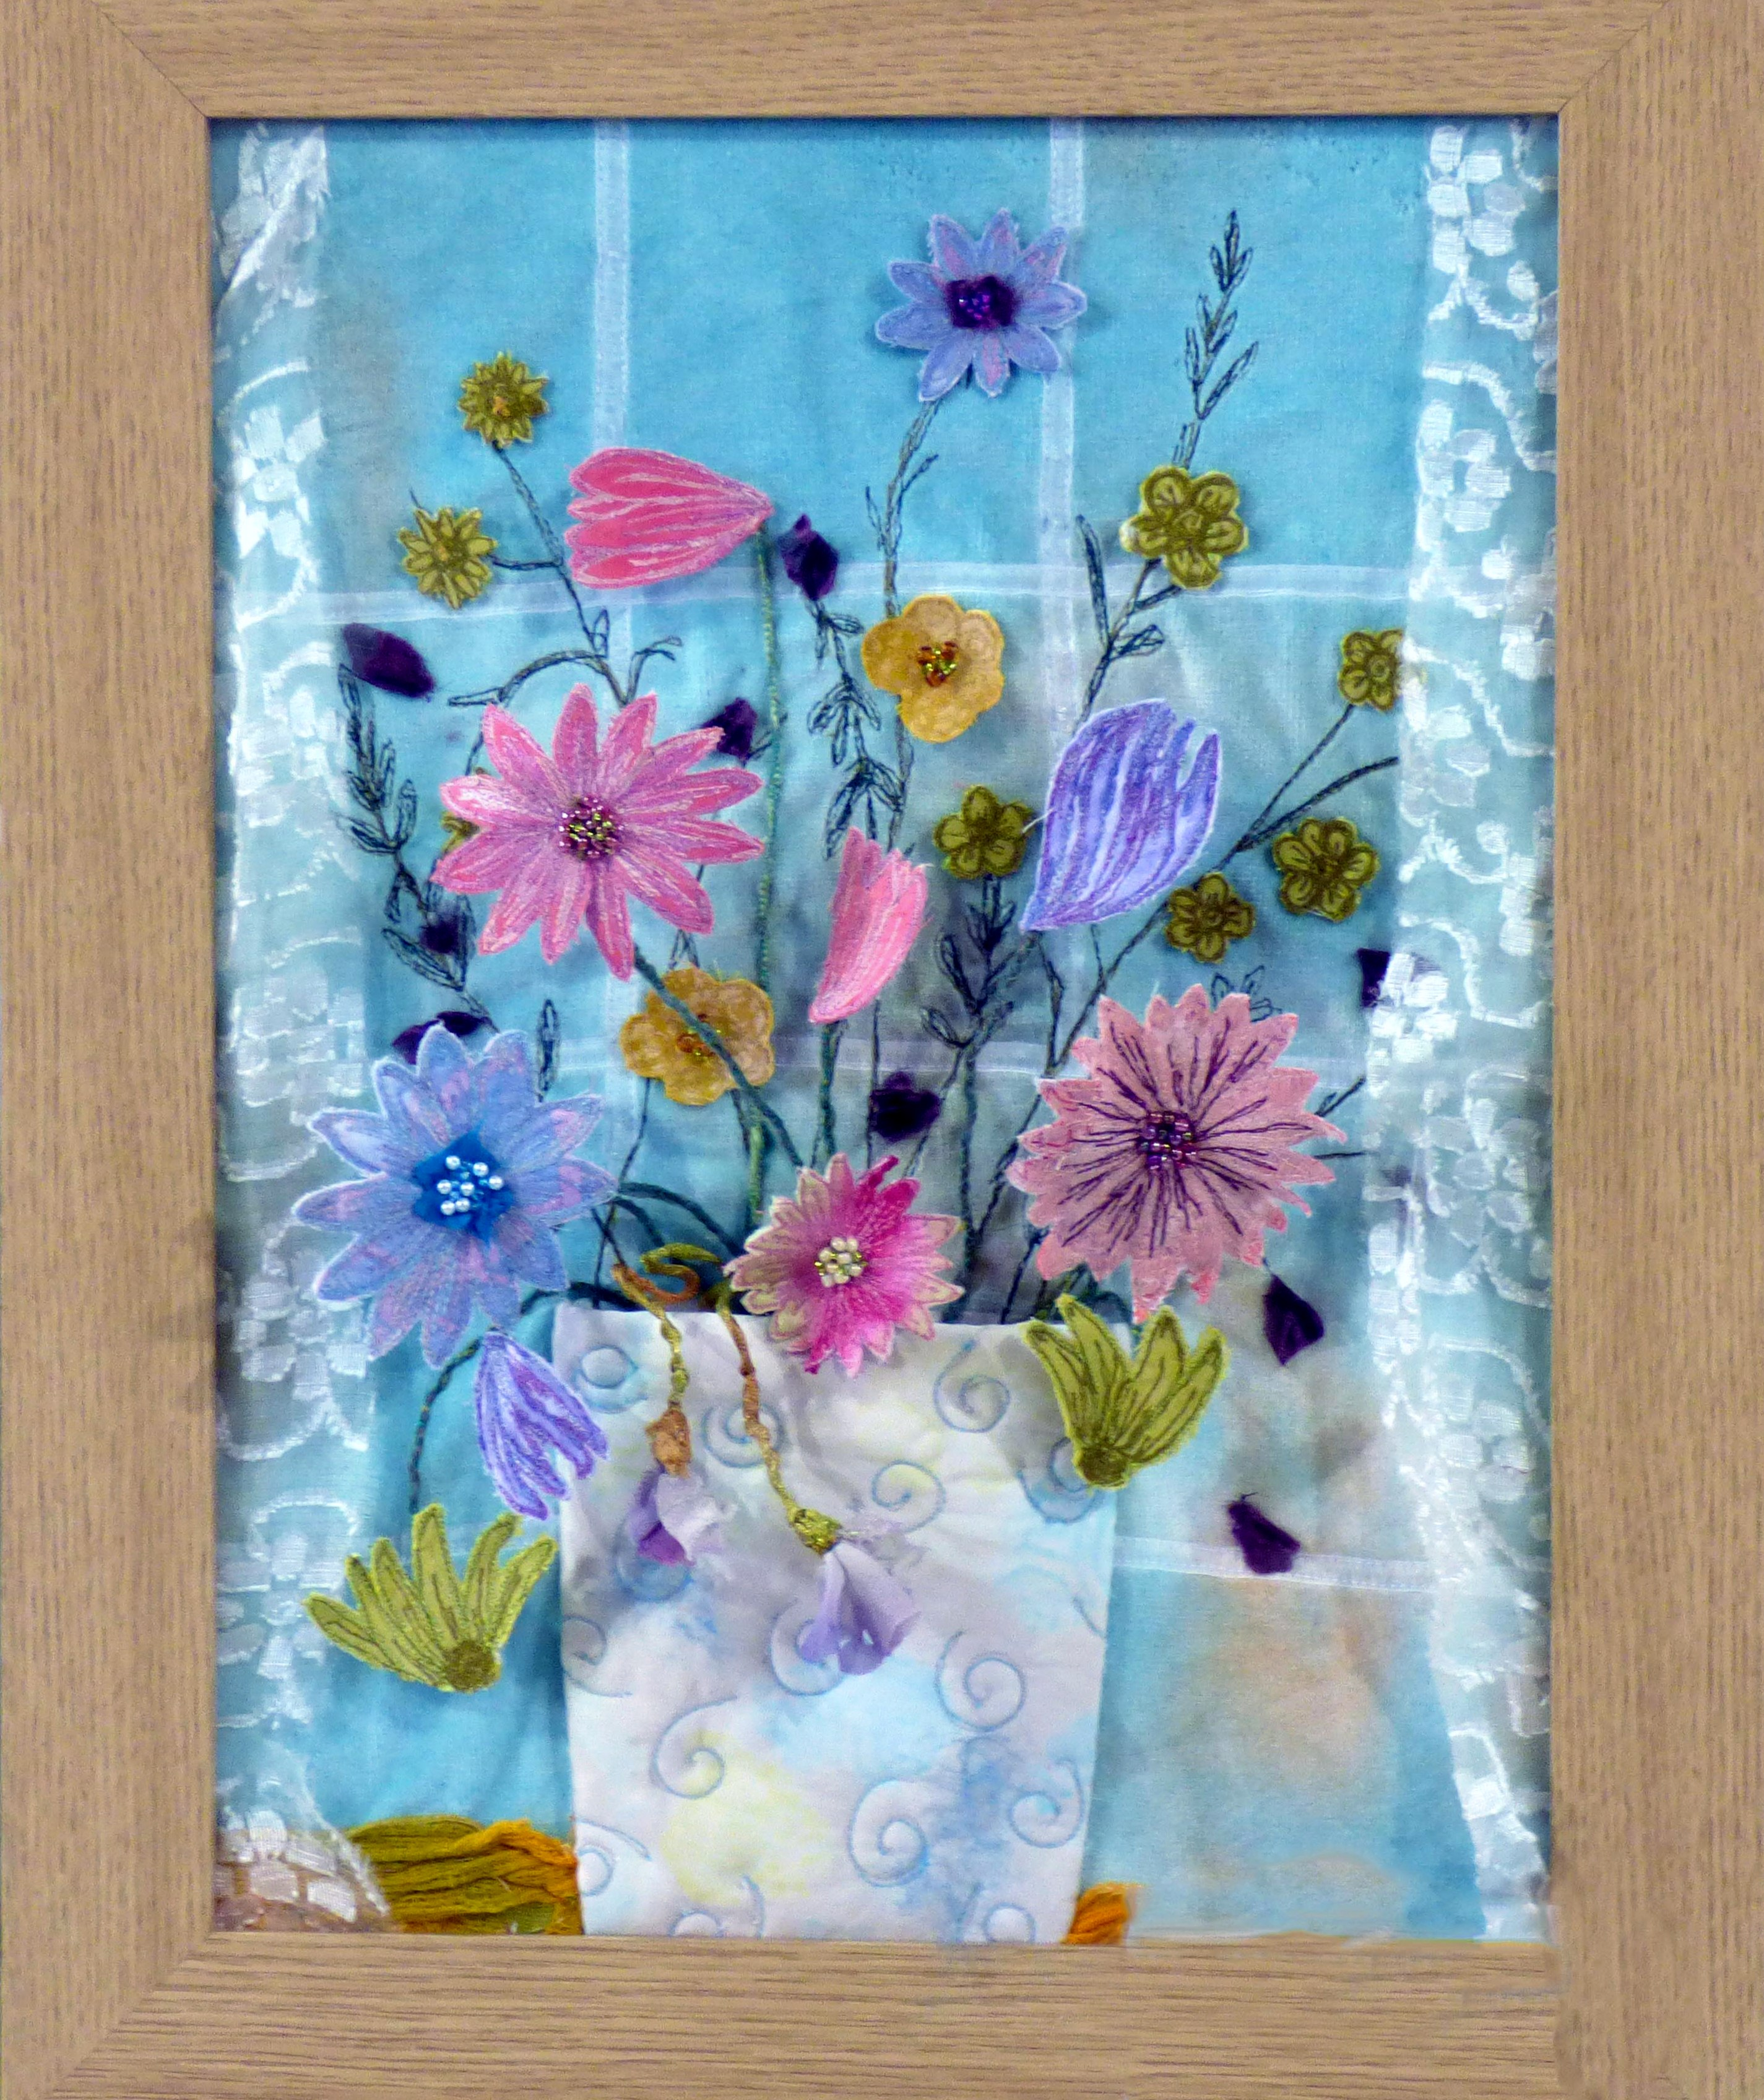 FLOWERS IN THE WINDOW by Marilyn Smith, N.Wales EG, free machine embroidery